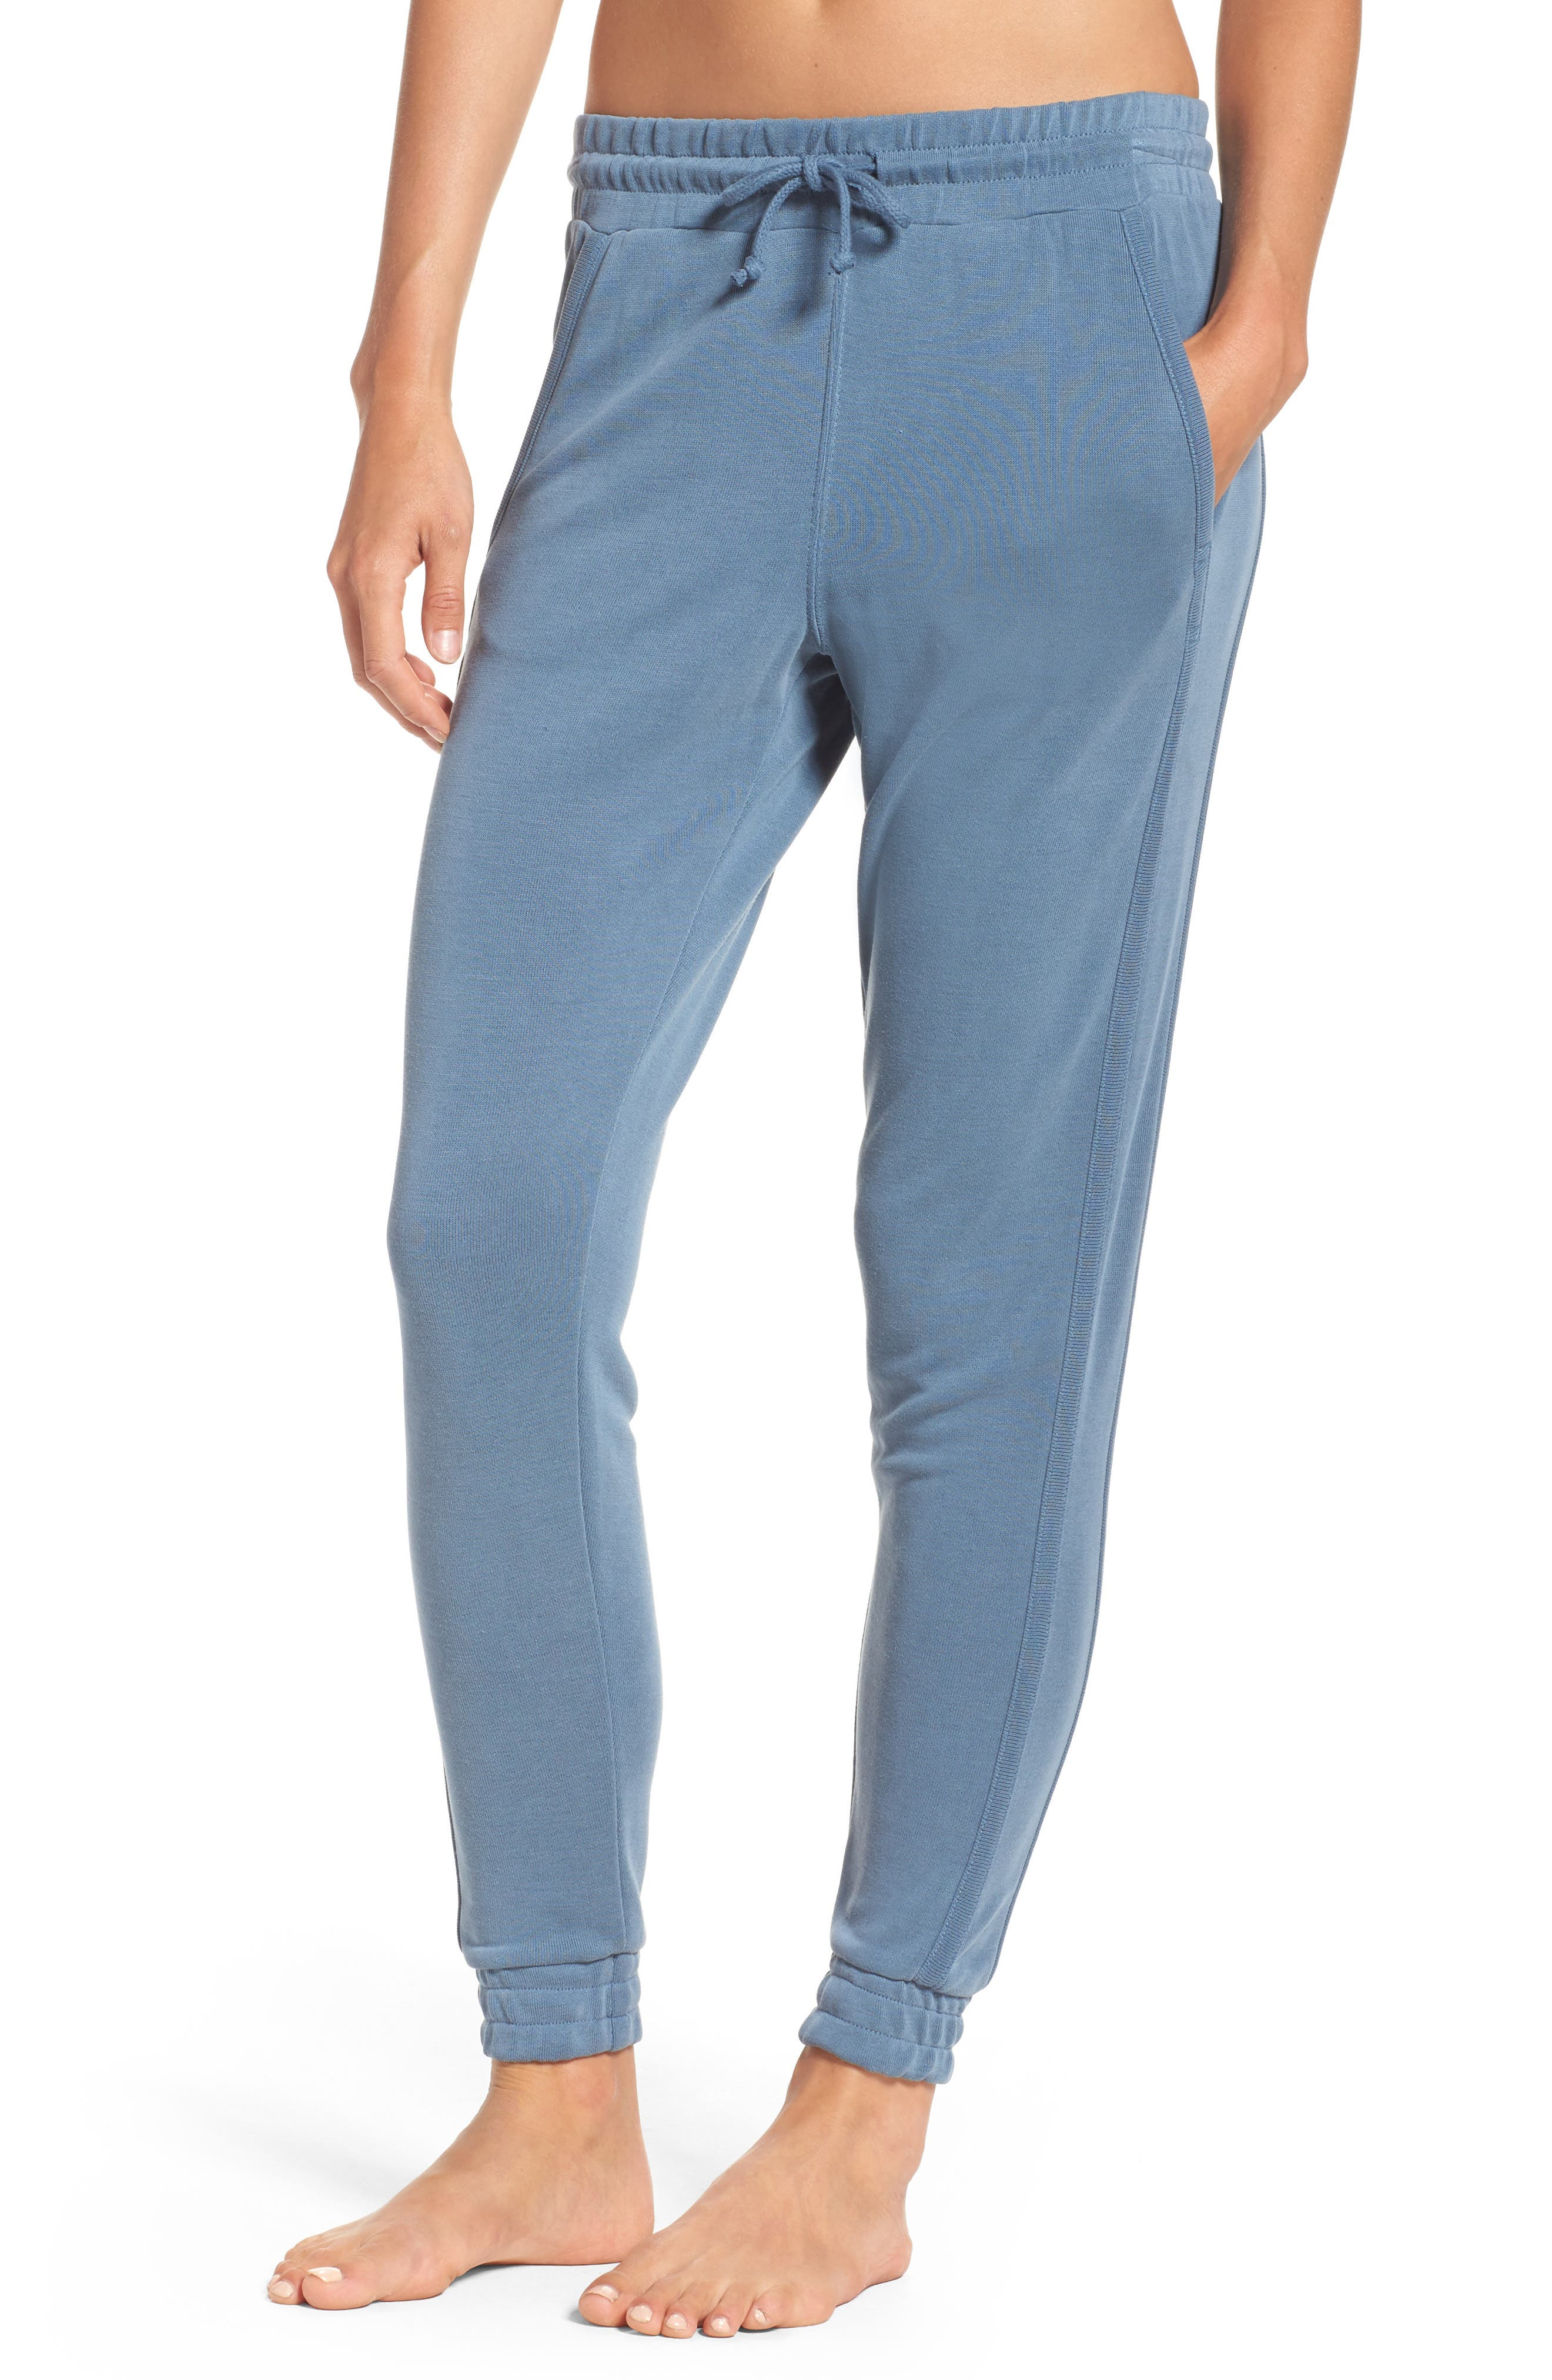 FP Movement Back Into It Joggers,                         Main,                         color, 400